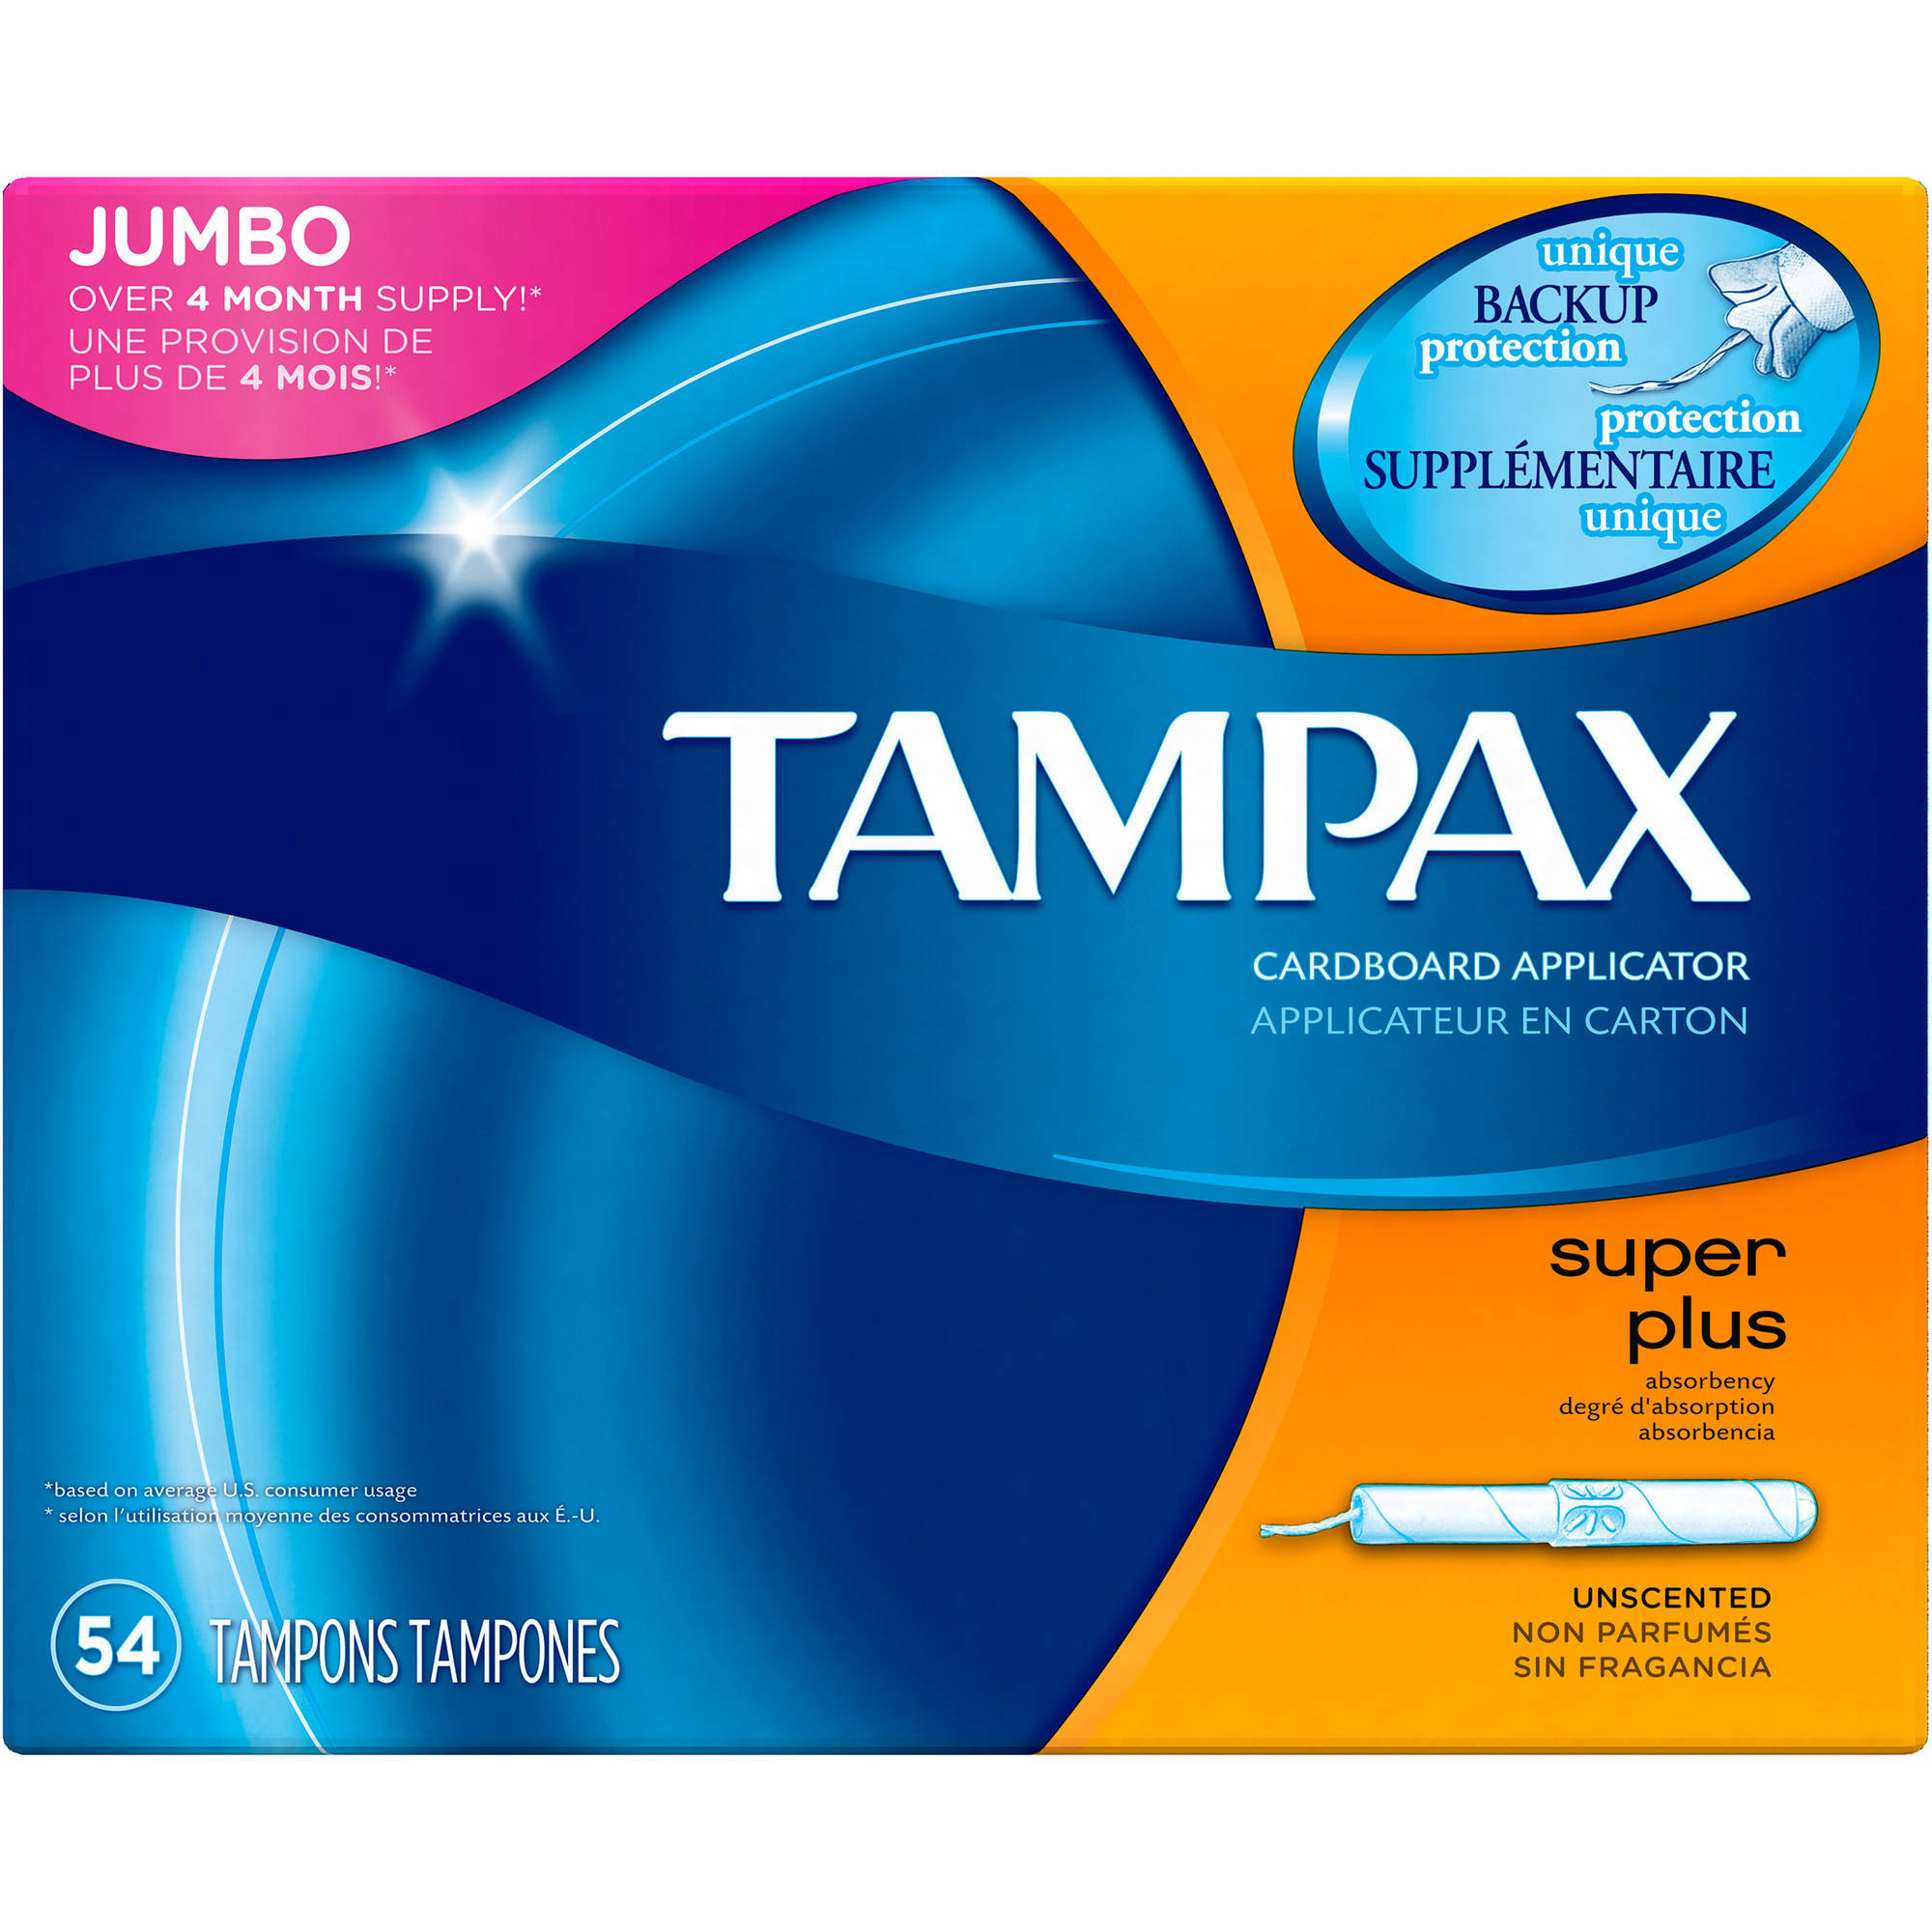 Tampax Super Plus Cardboard Applicator Tampons, 54 count